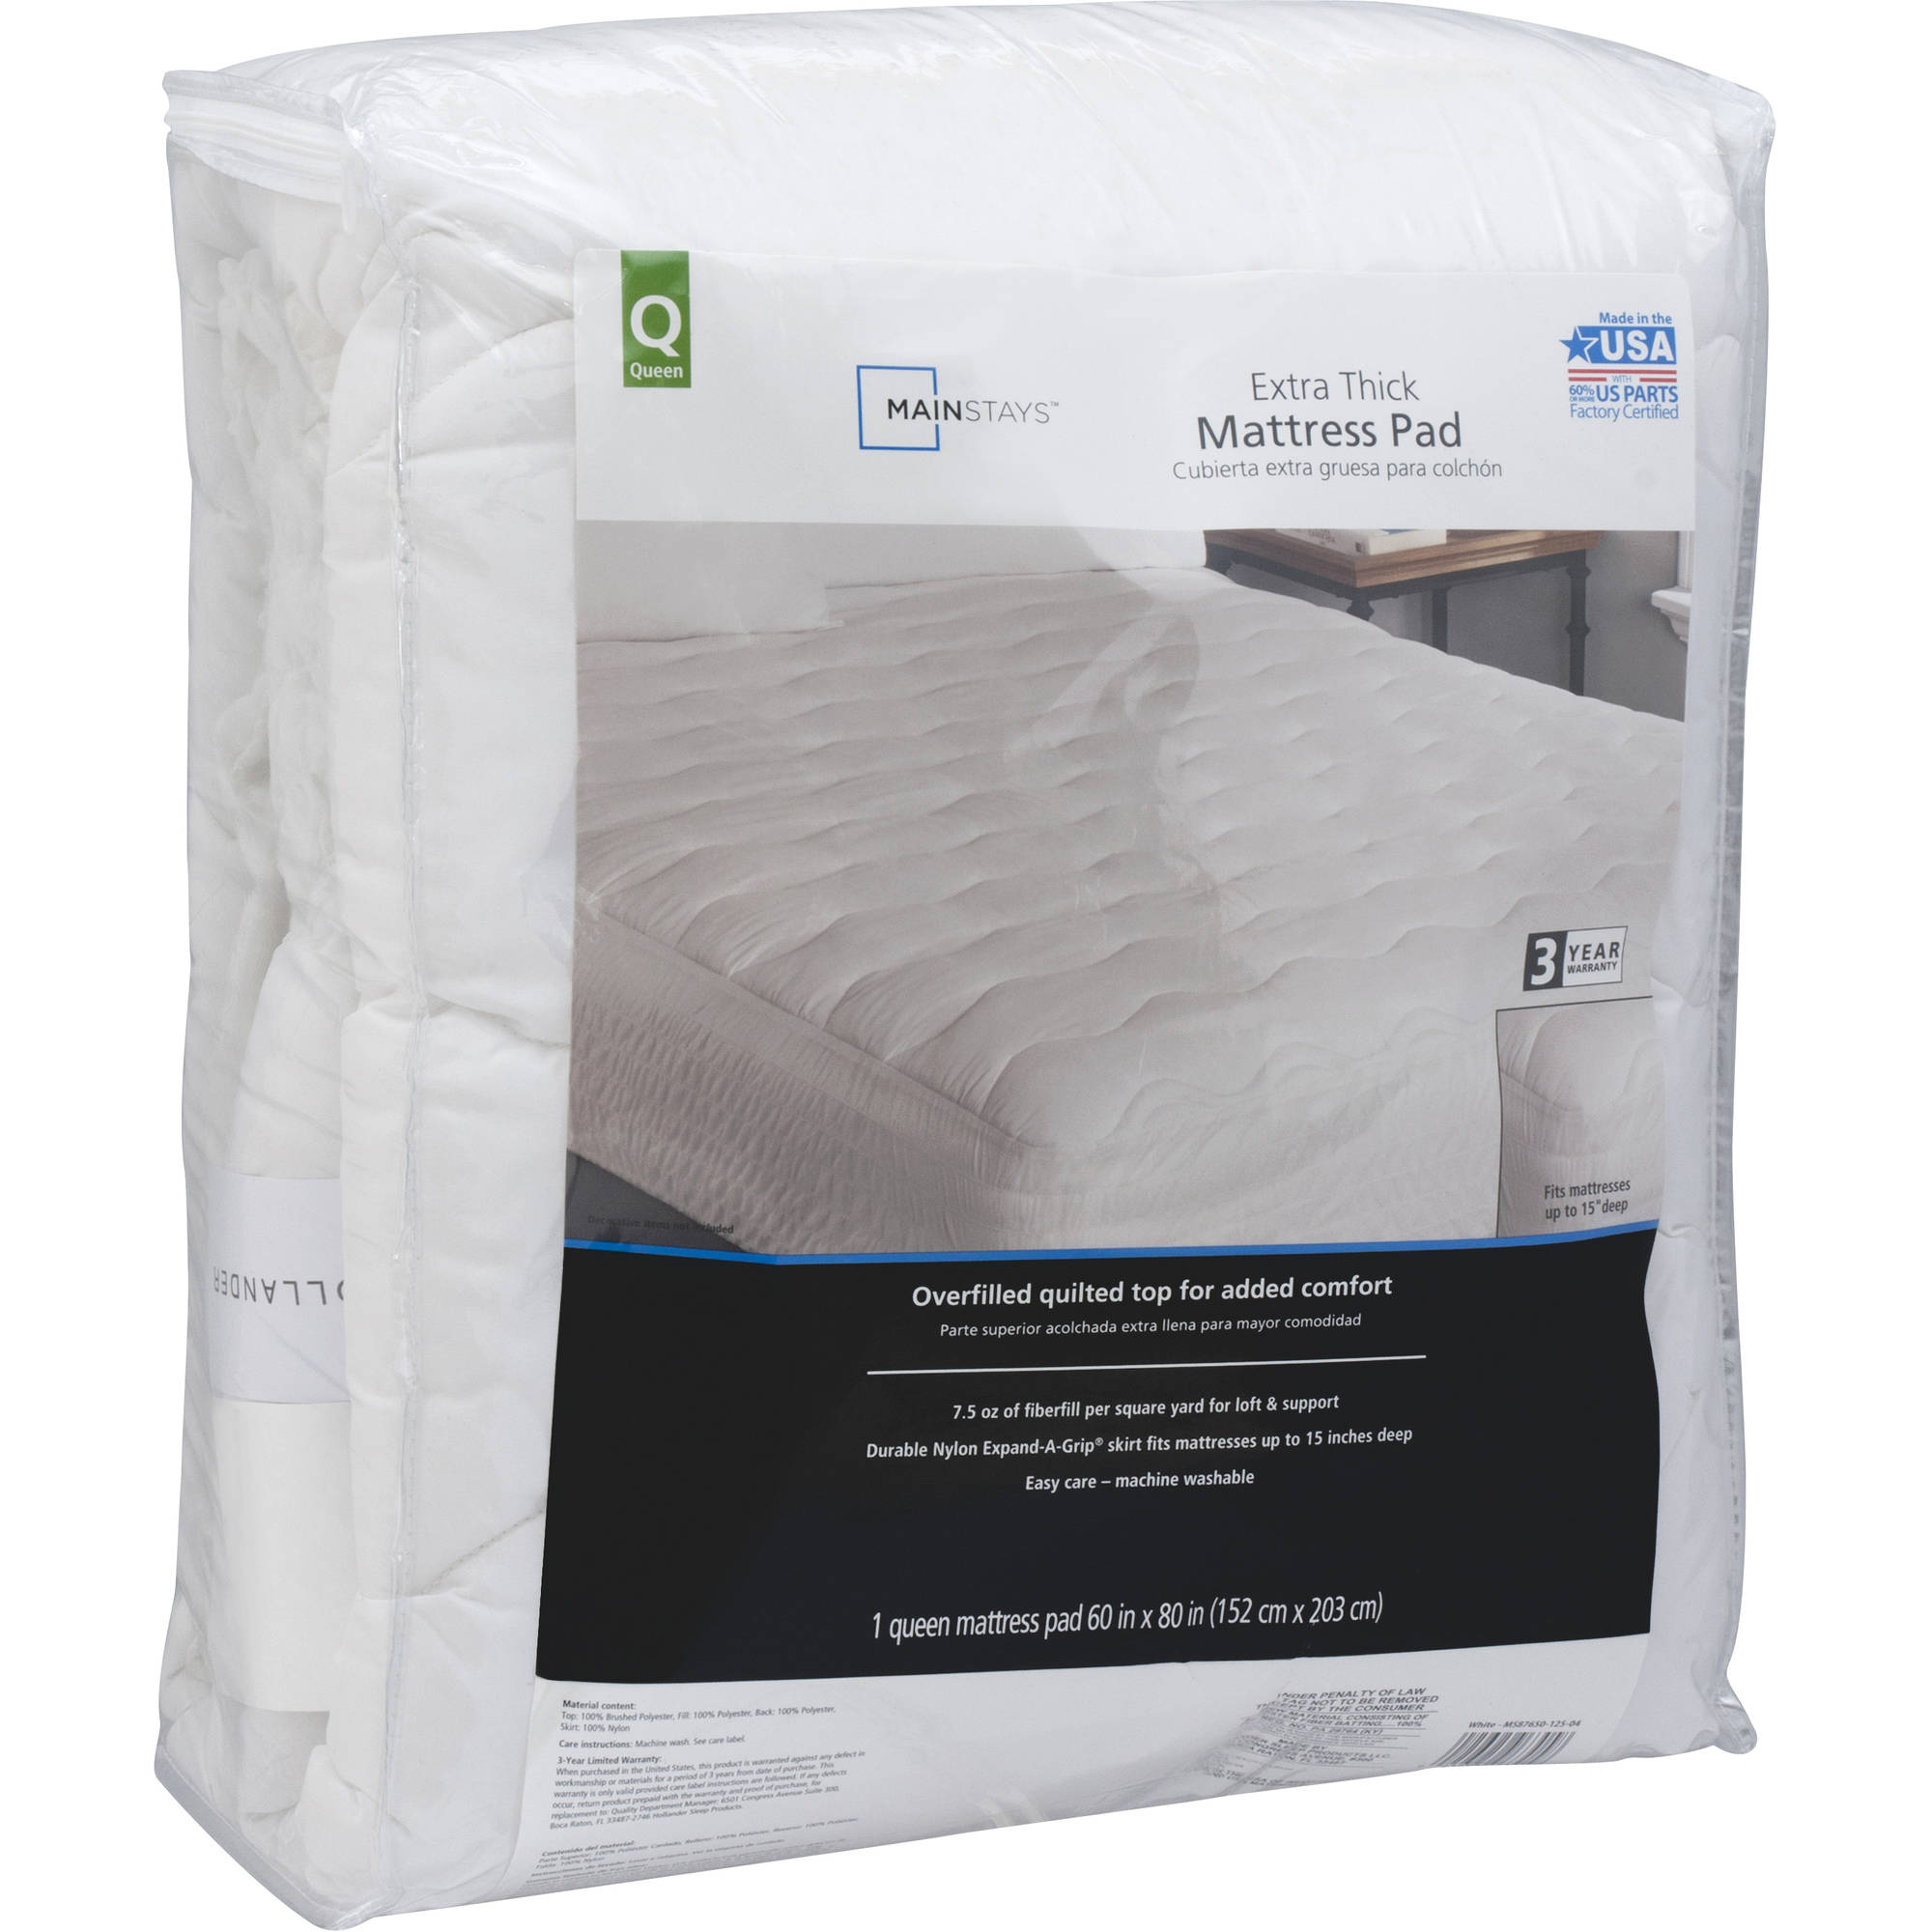 mainstays extrathick mattress pad 75 oz multiple sizes